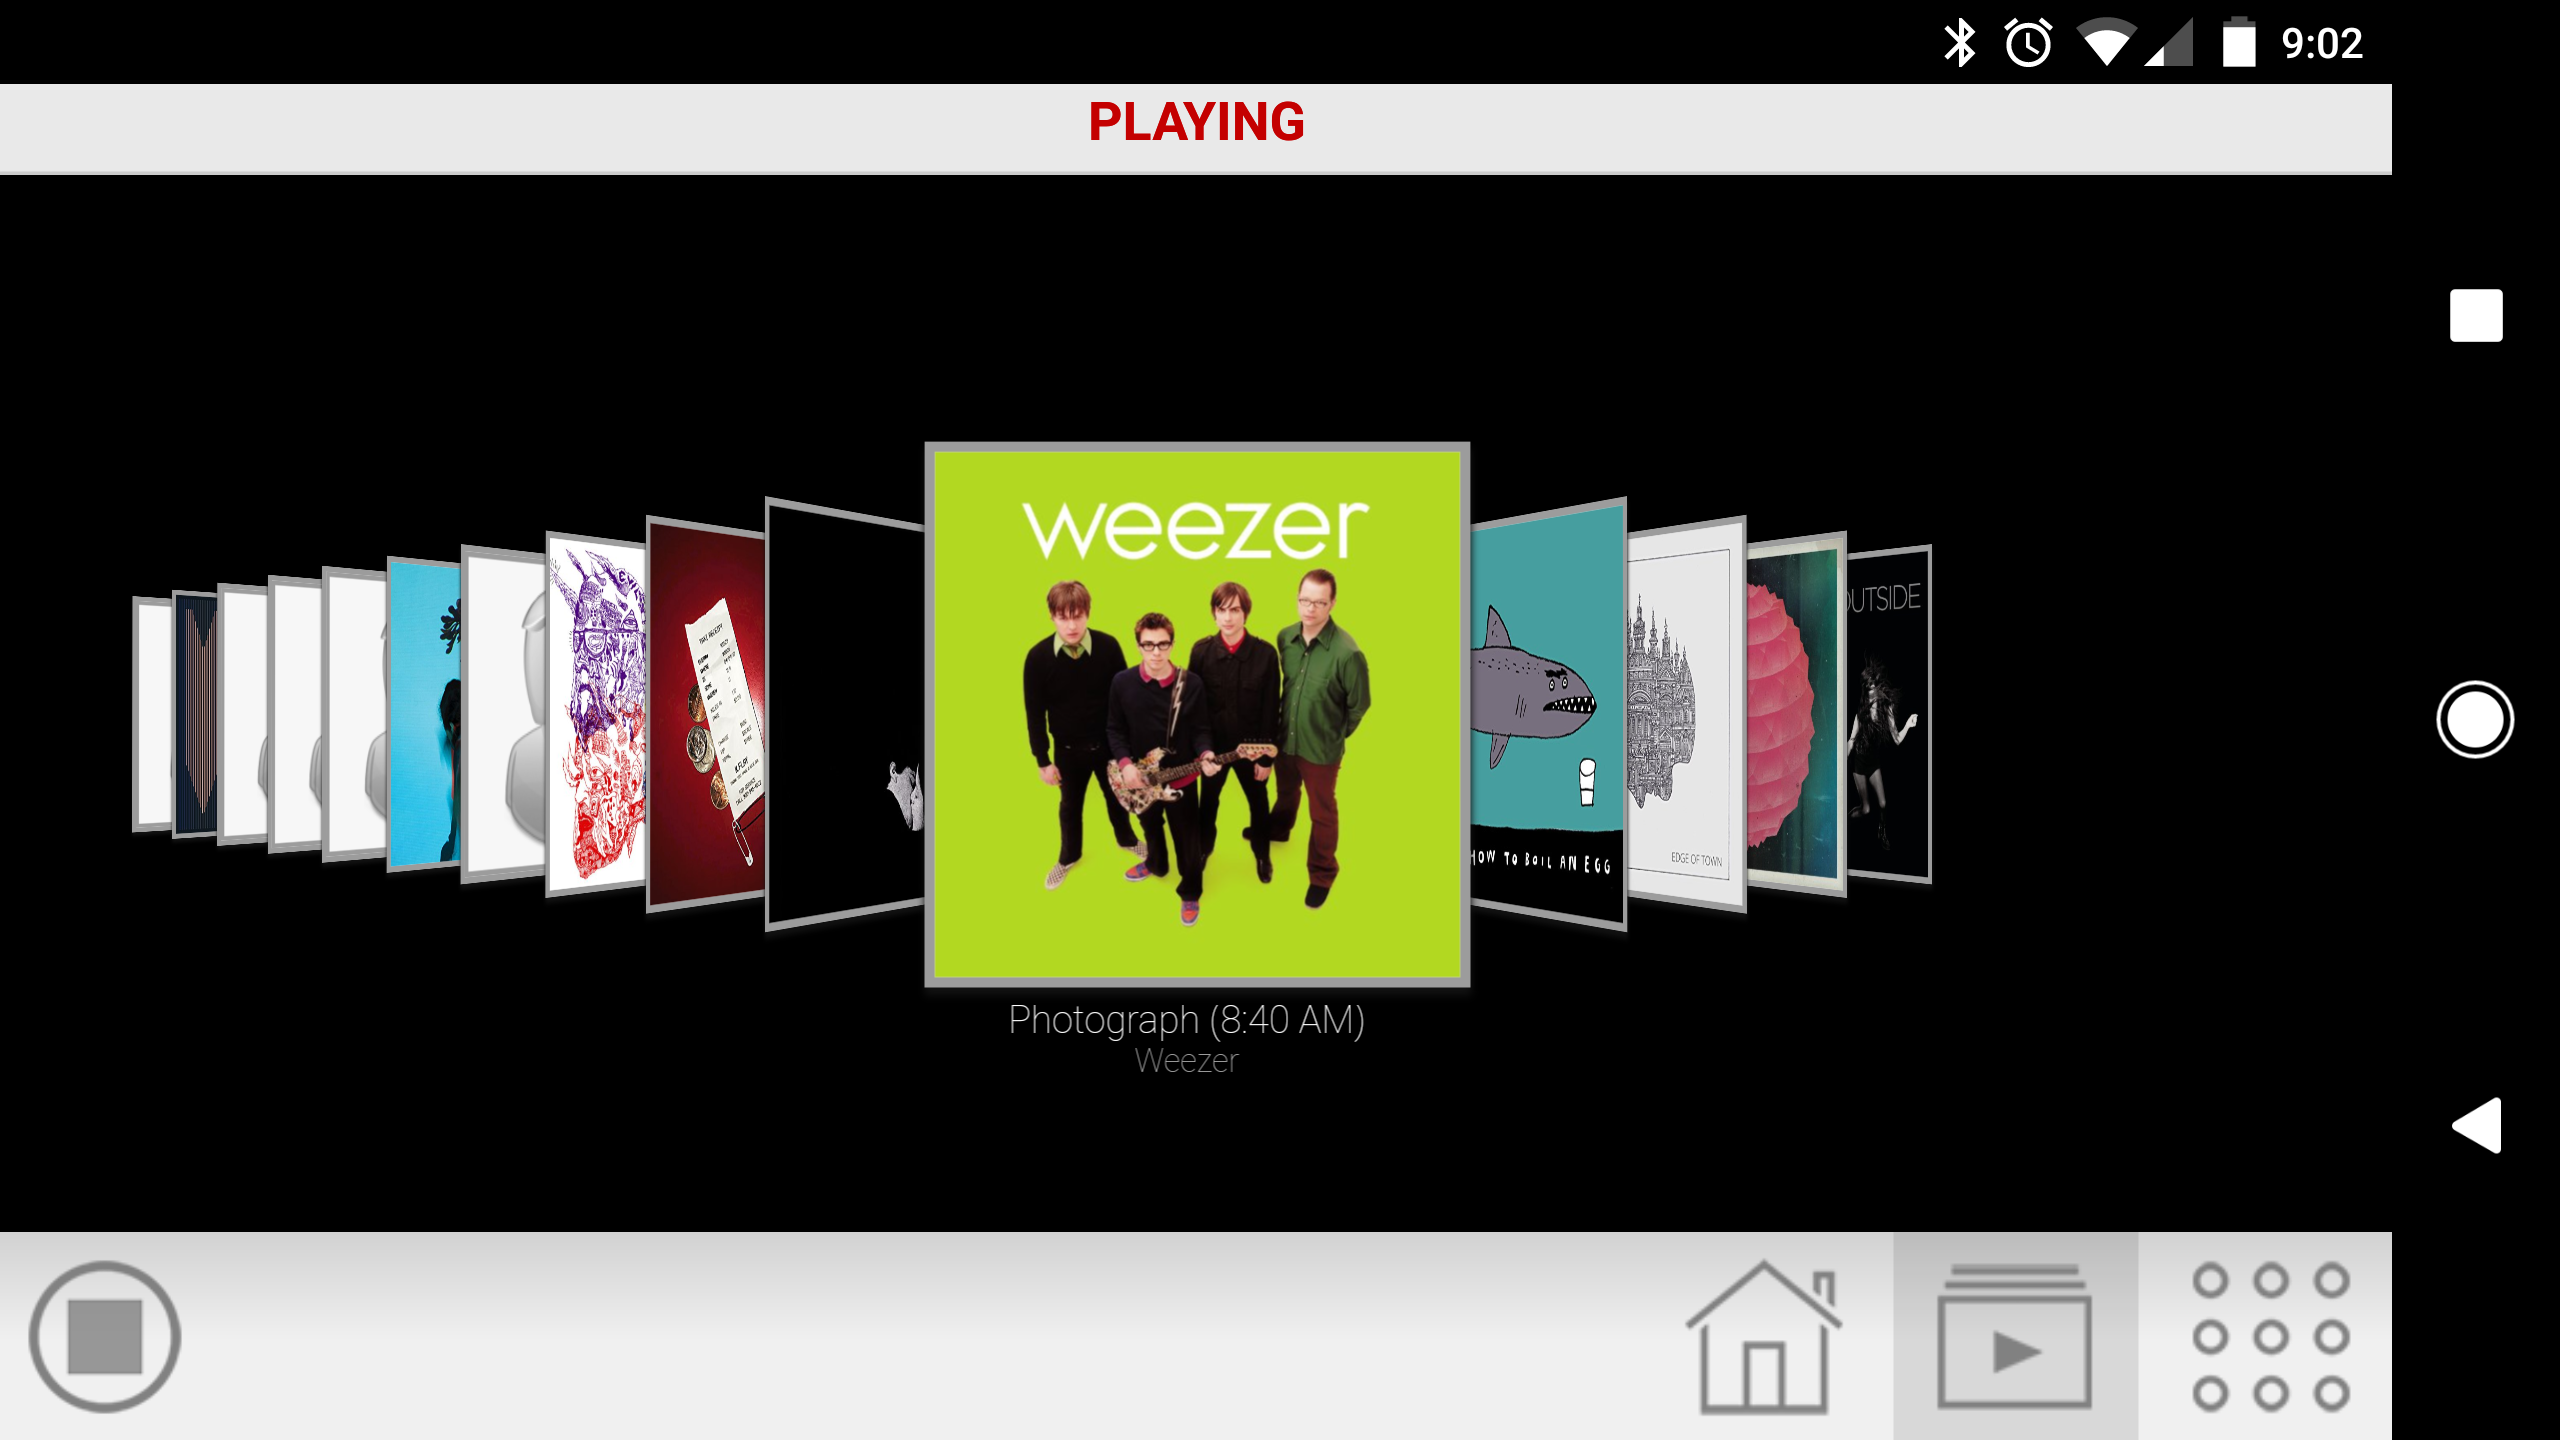 Mobile App Playlist Coverflow Screen